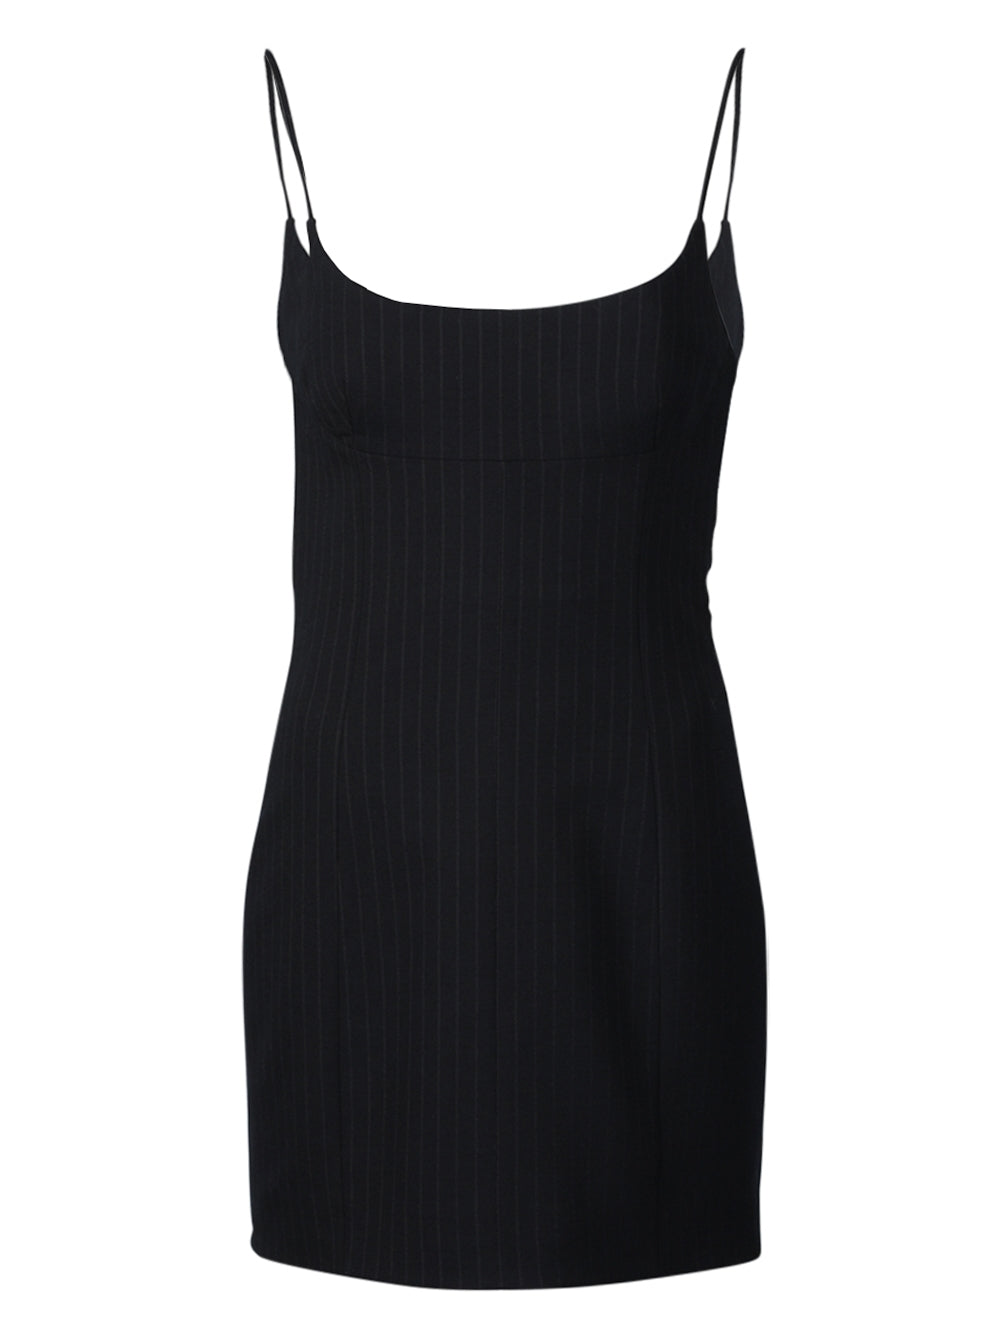 Black Tailored Cami Pinstripe Dress